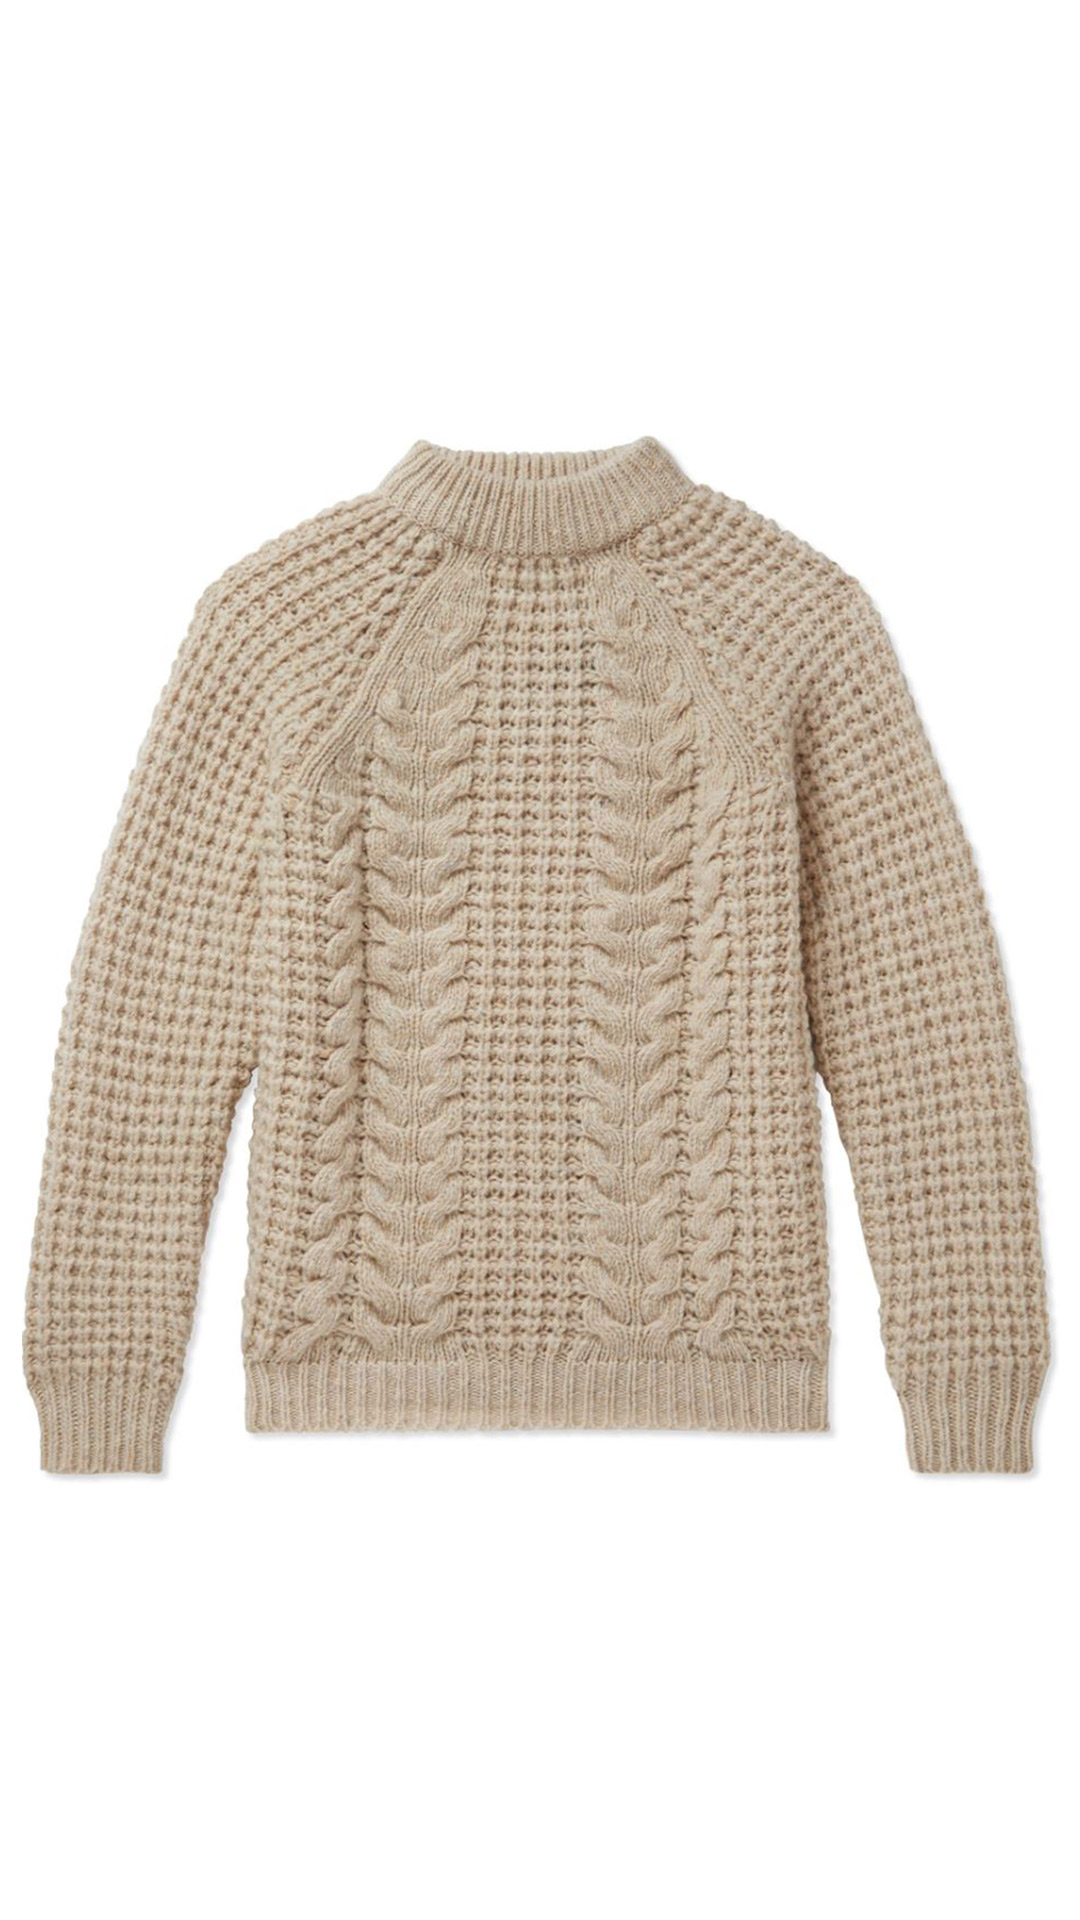 KNIGSMAN Cable-Knit Sweater